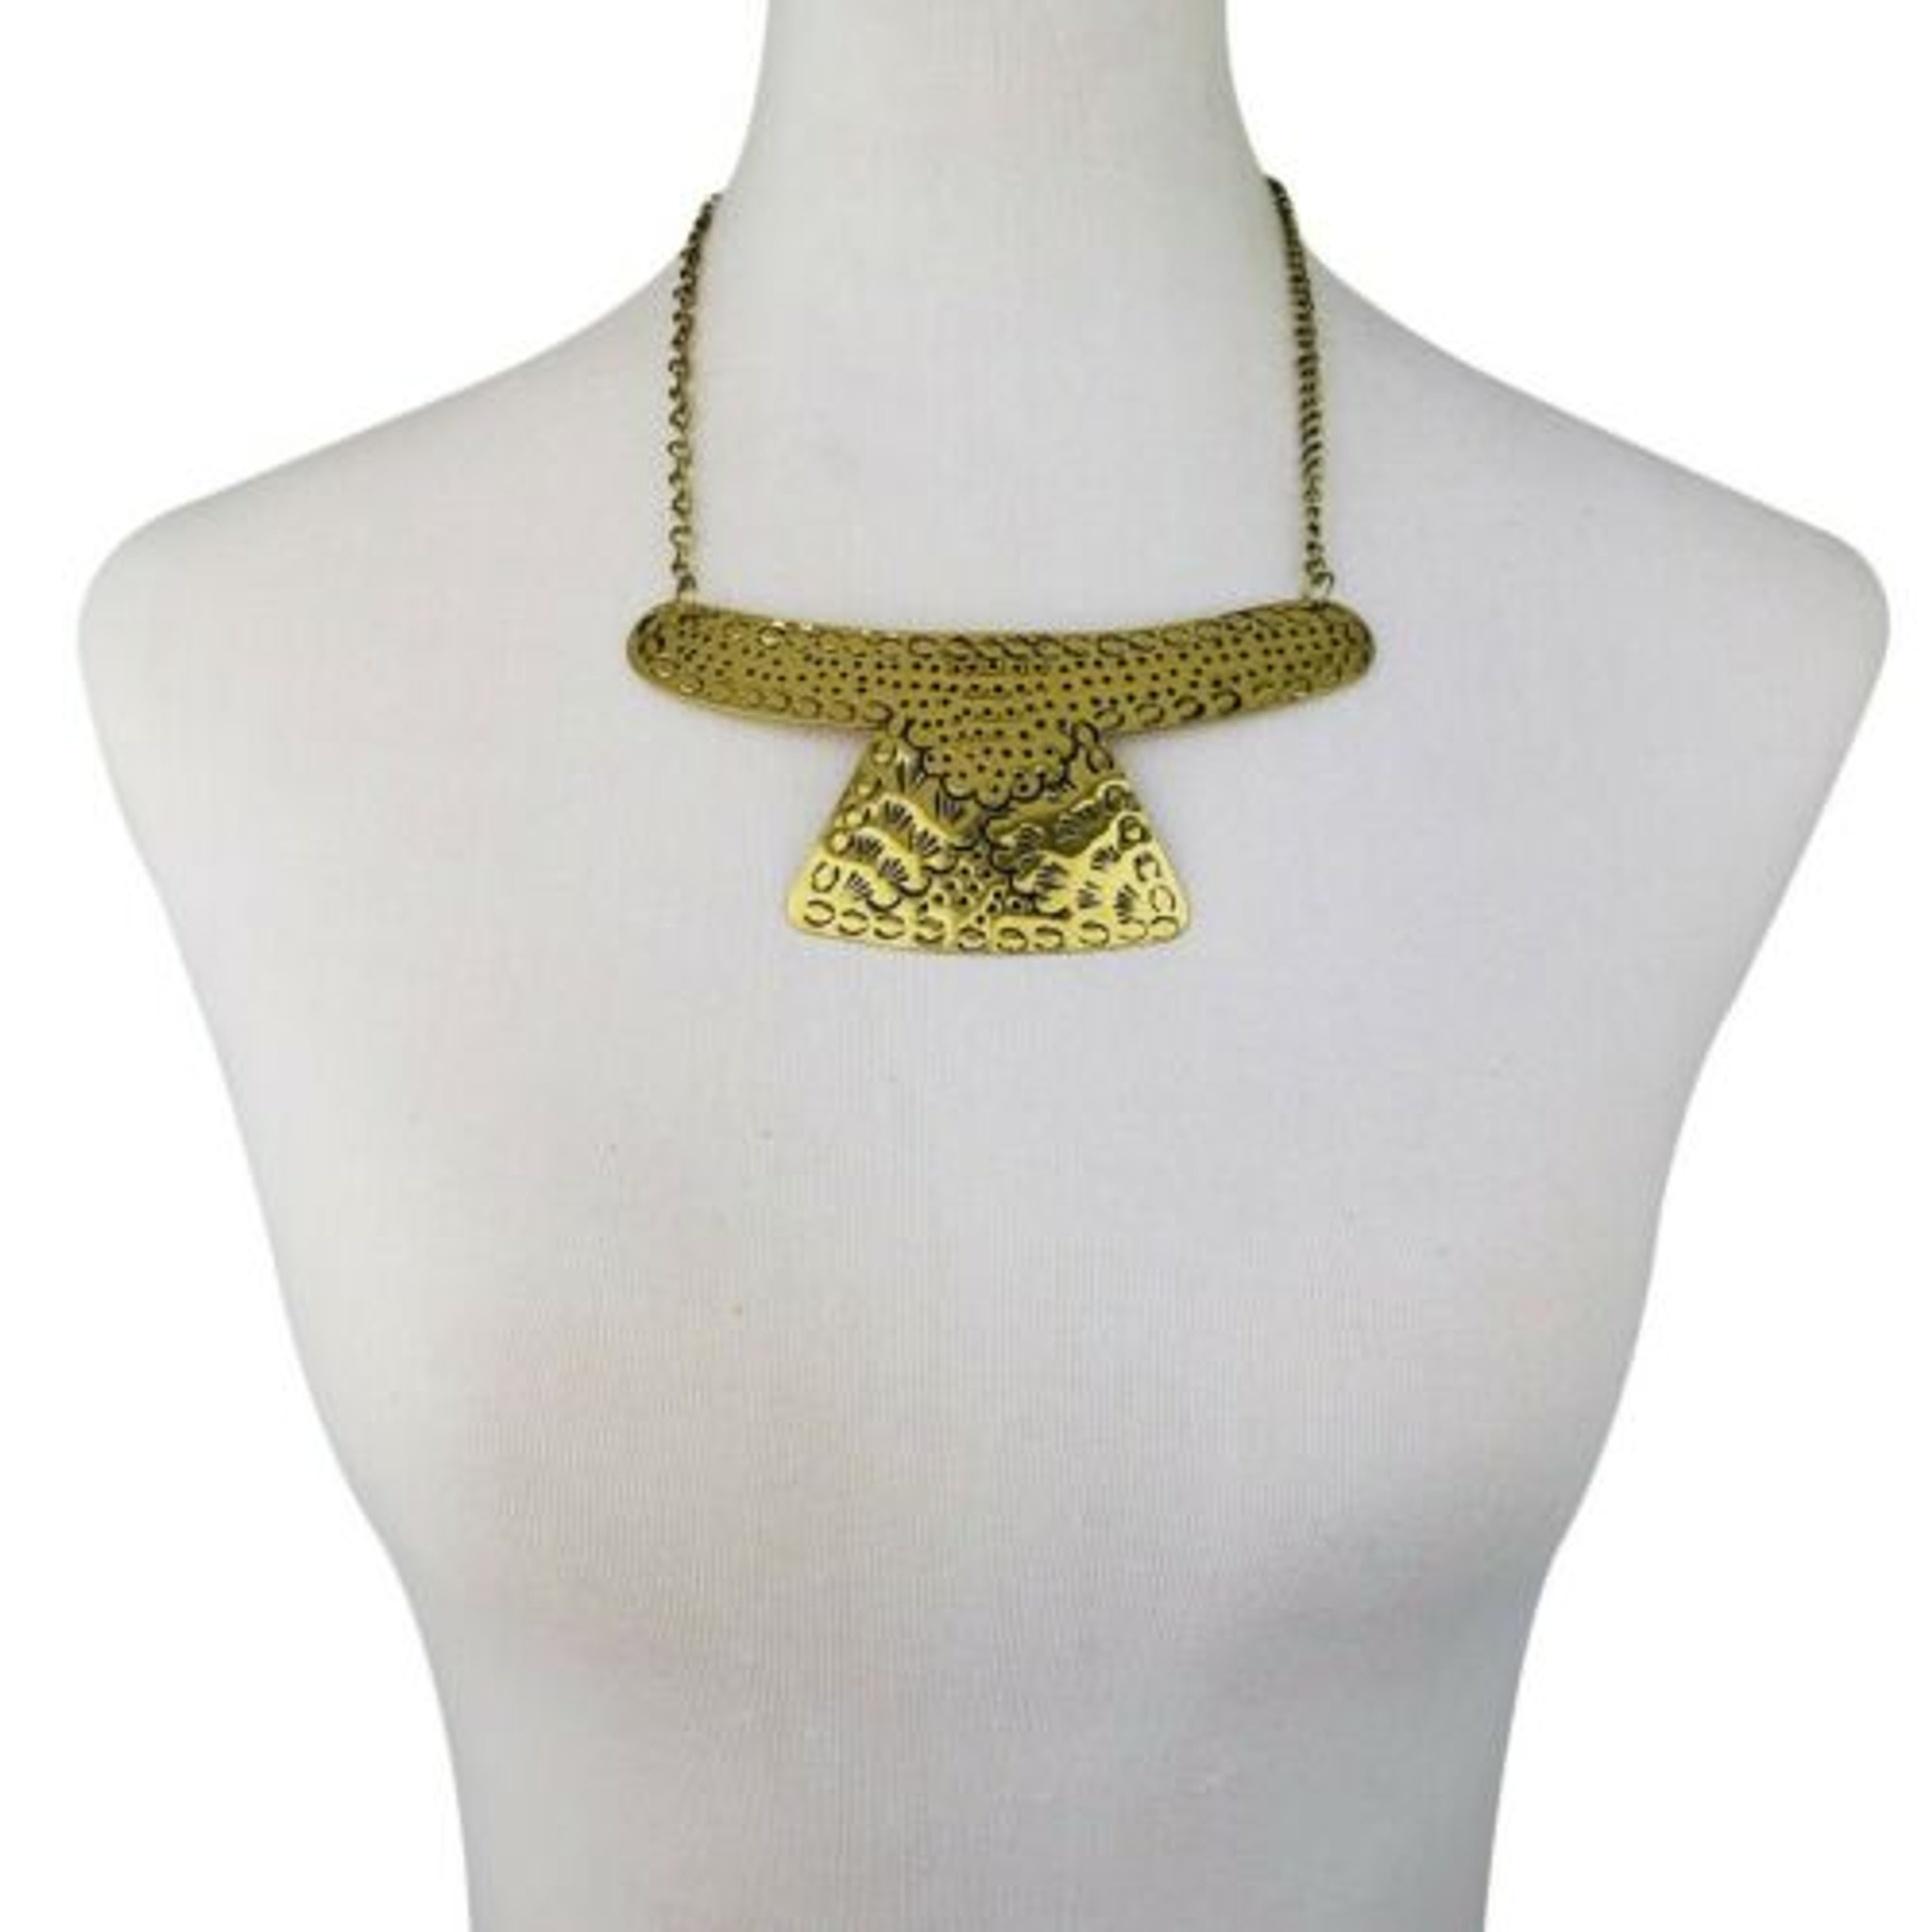 Brass Choker Necklace Set Gold Plated Cuff Boho Fashion Jewelry Floral Patina